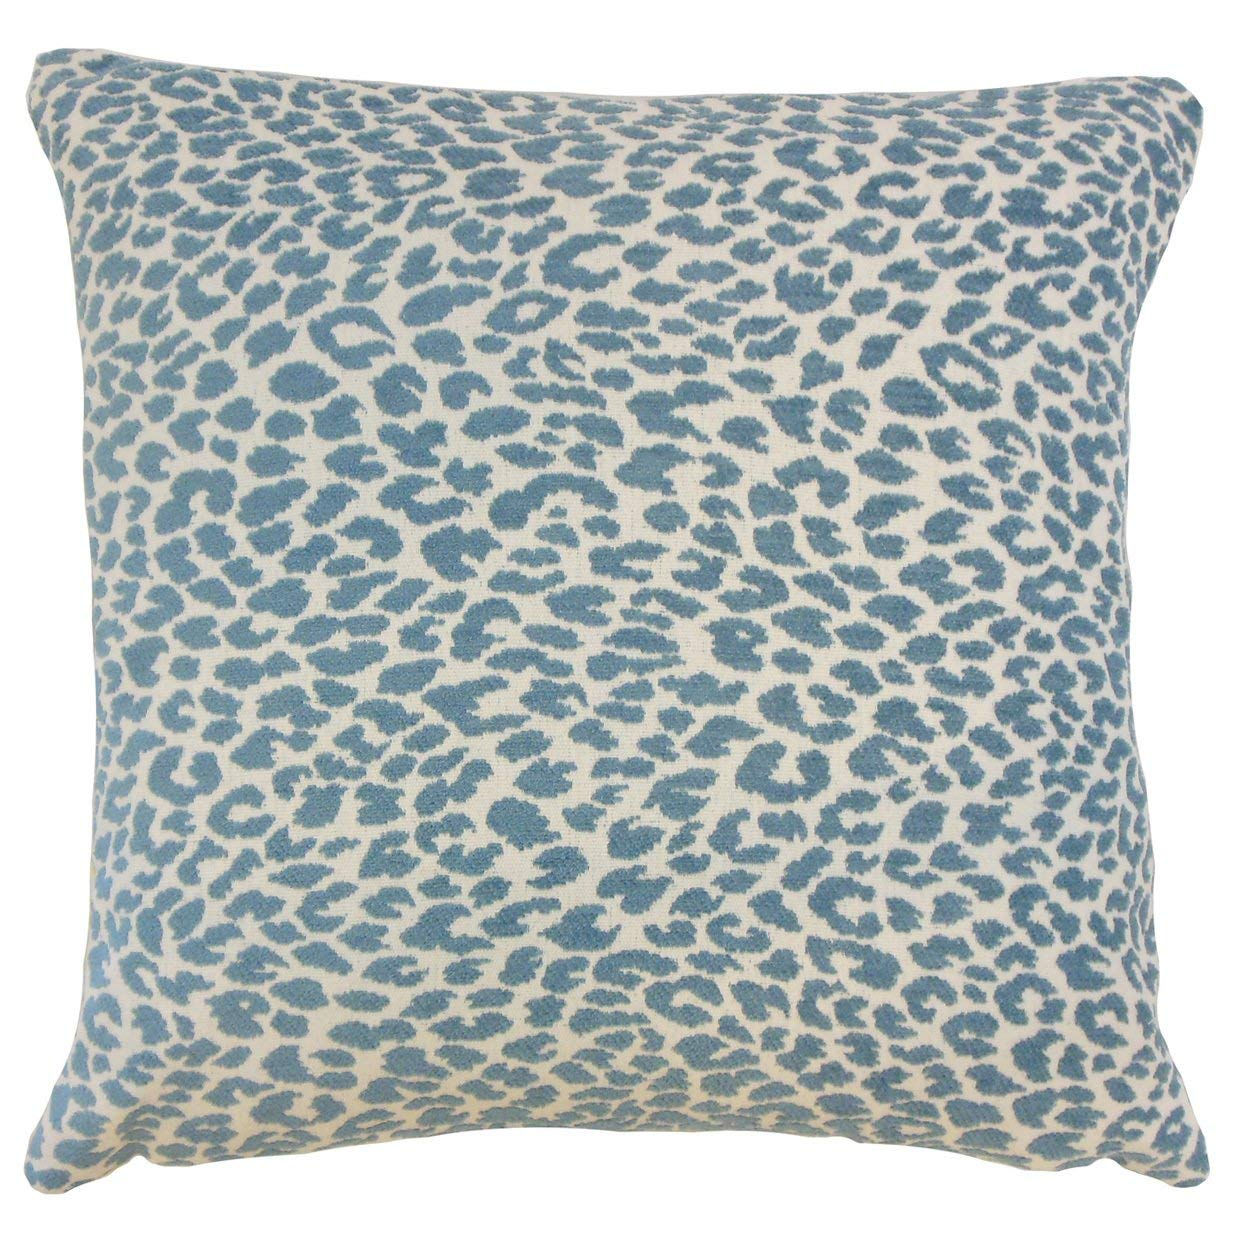 The Pillow Collection Pesach Animal Print Delft Down Filled Throw Pillow